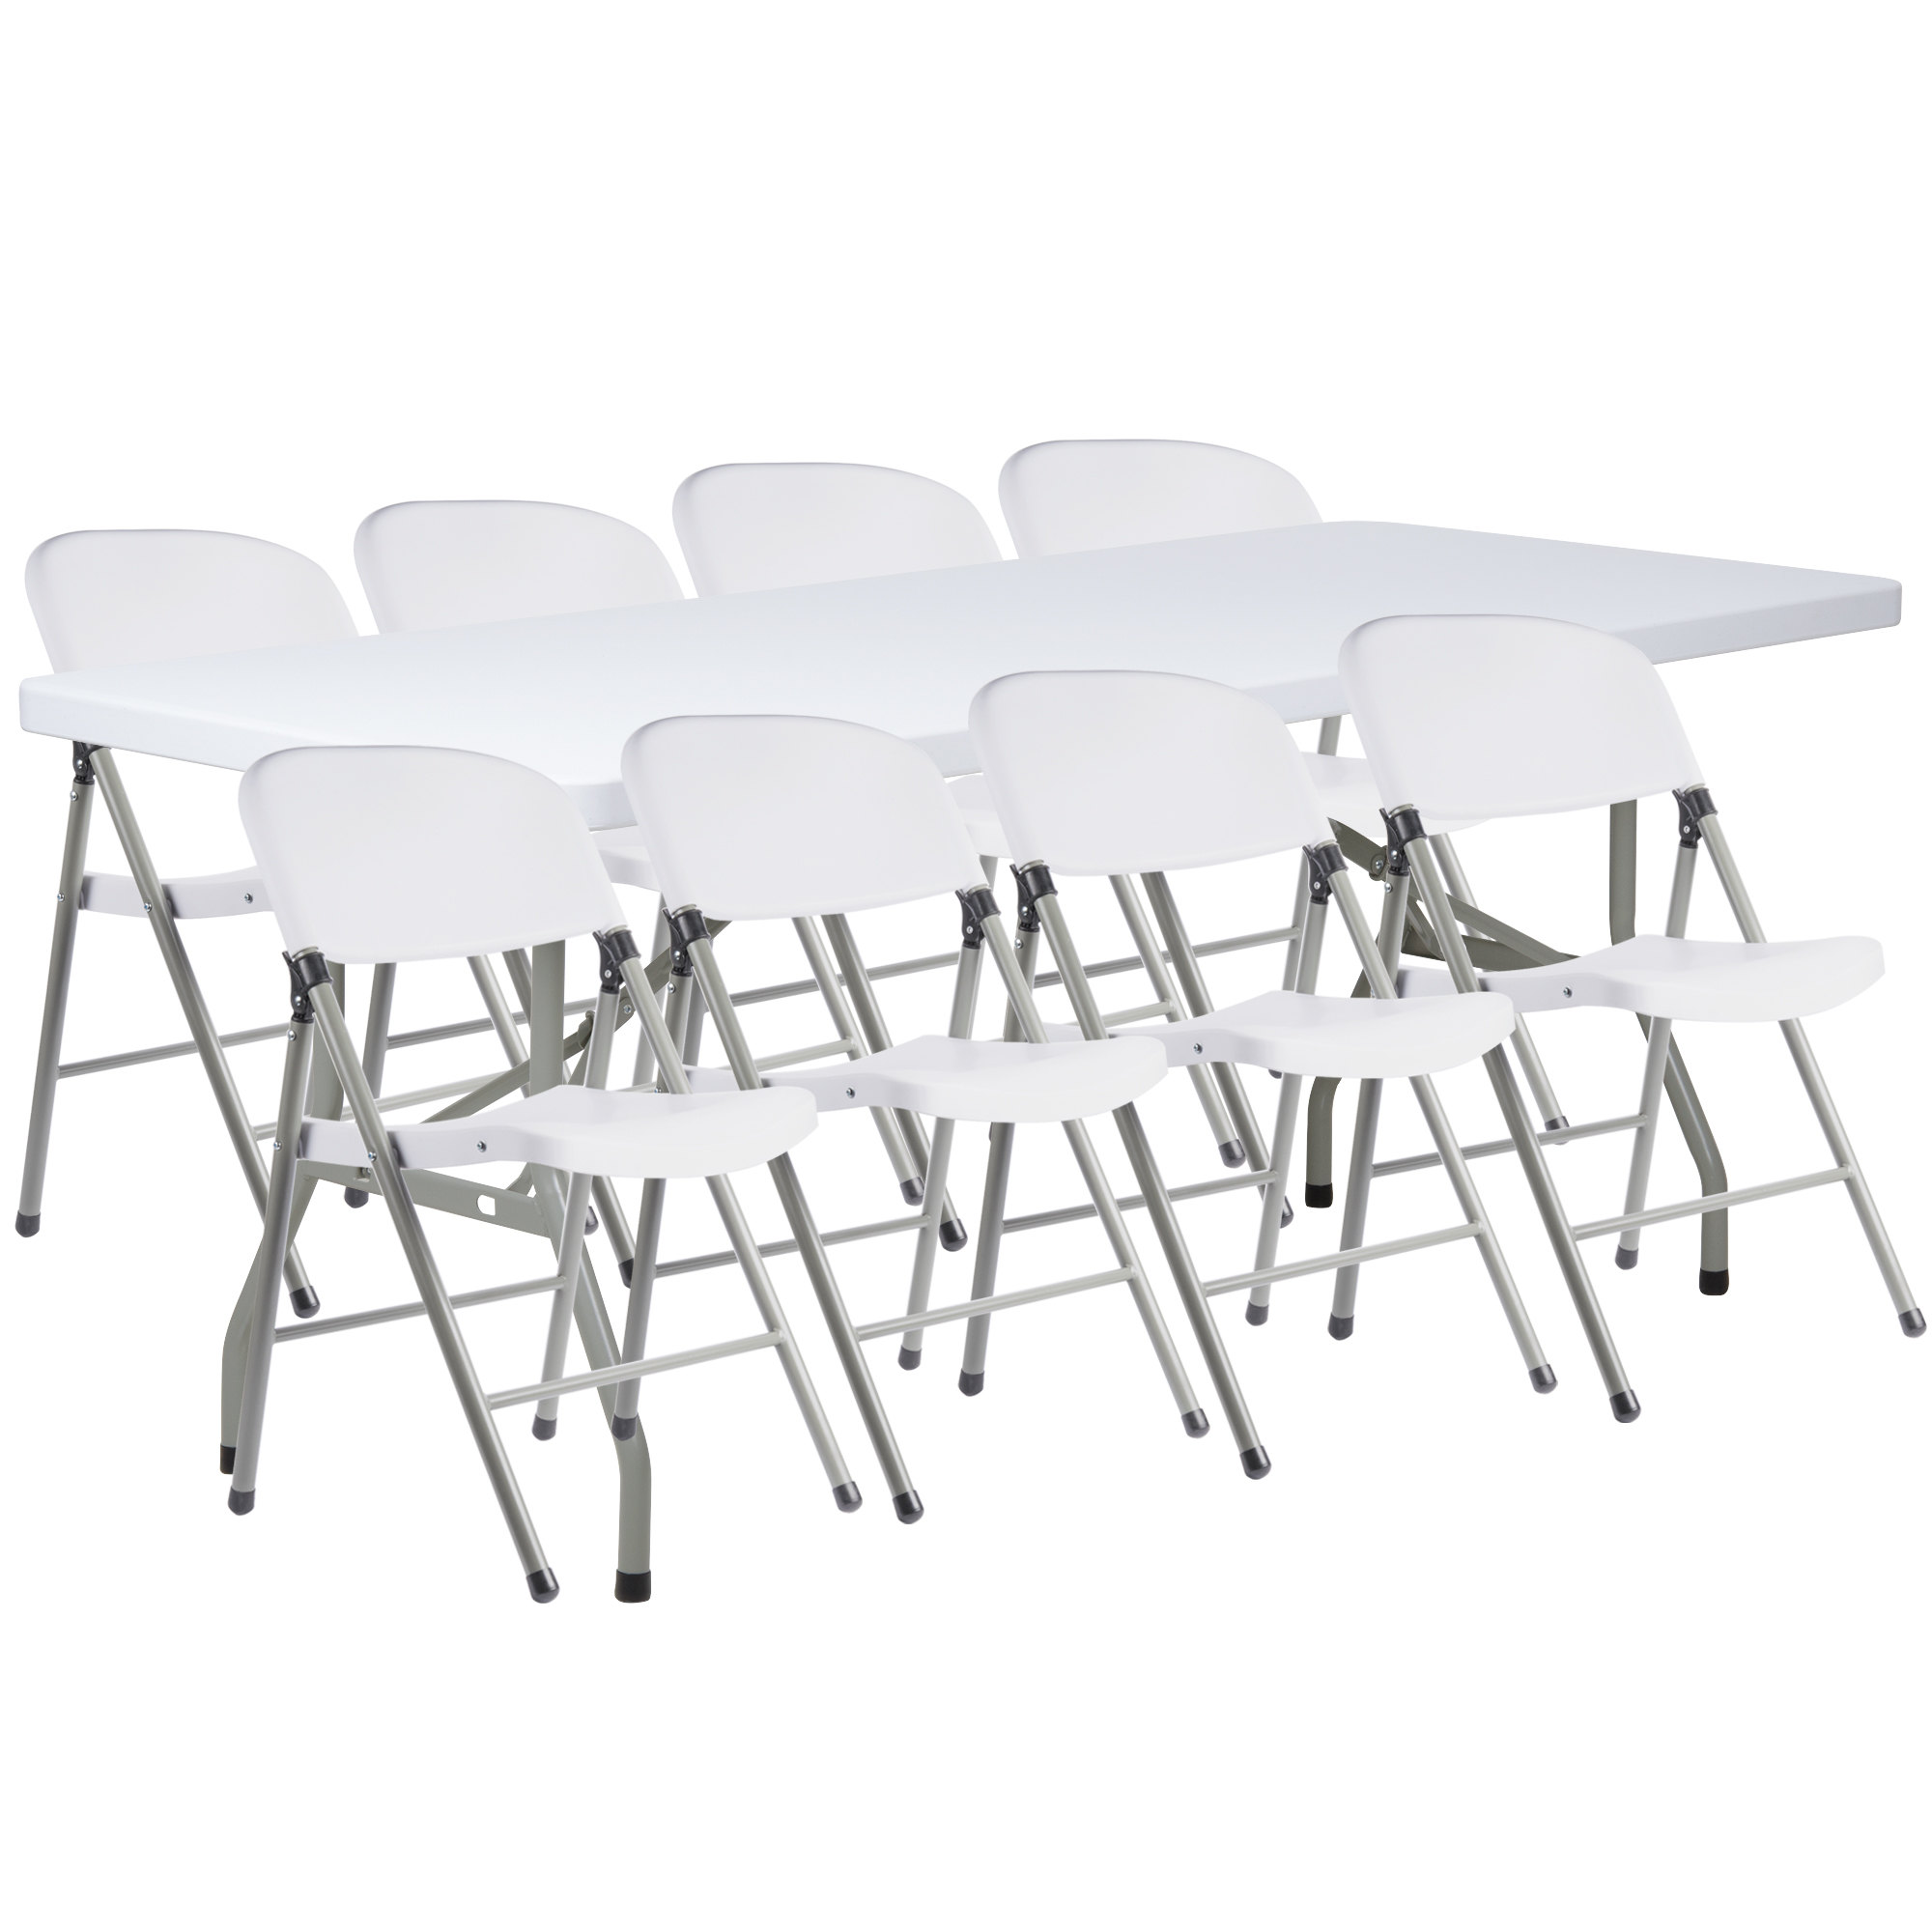 "#4 - 30"" x 72"" Granite White Heavy Duty Blow Molded Plastic Folding Table with 8 White Folding Chairs"